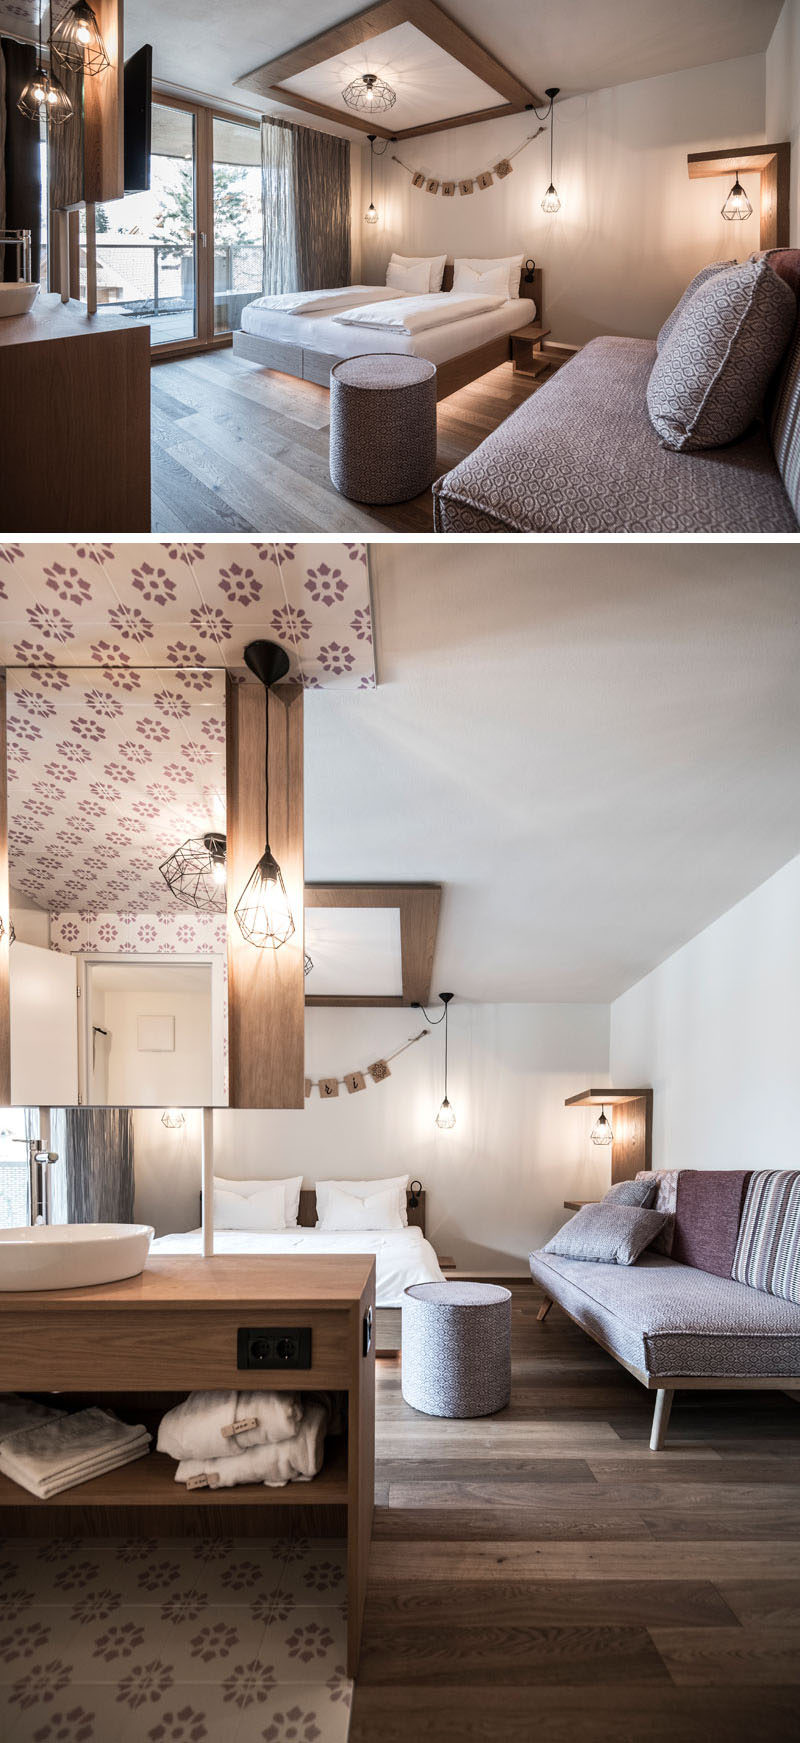 Hotel Room Design: Noa* Gave Italian Hotel Tofana A Modern And Fun Update